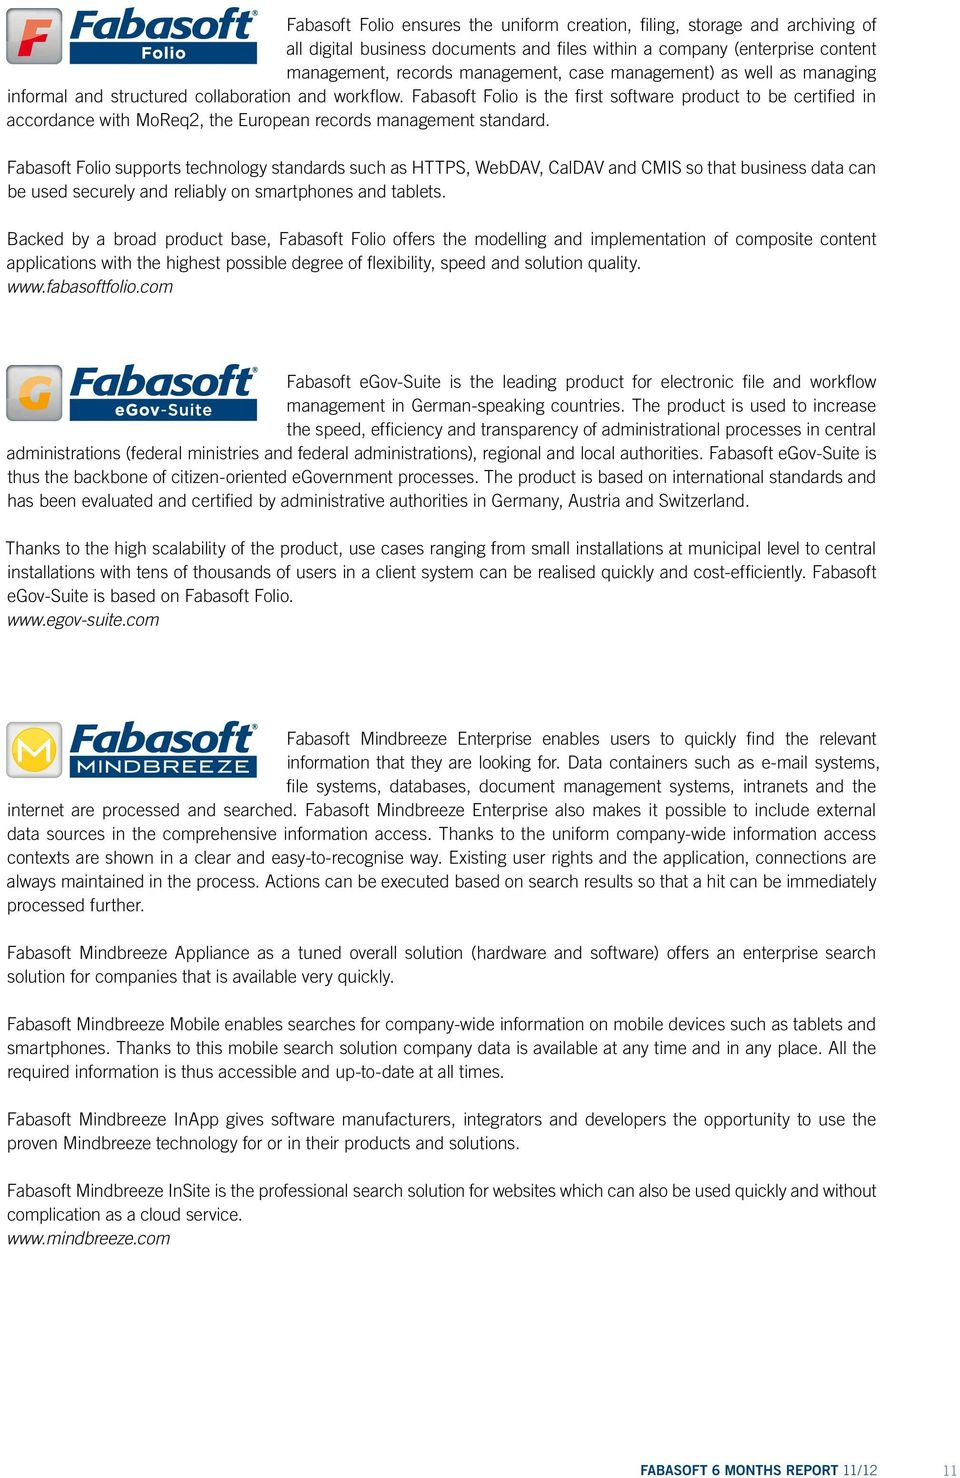 Fabasoft Folio is the first software product to be certified in accordance with MoReq2, the European records management standard.